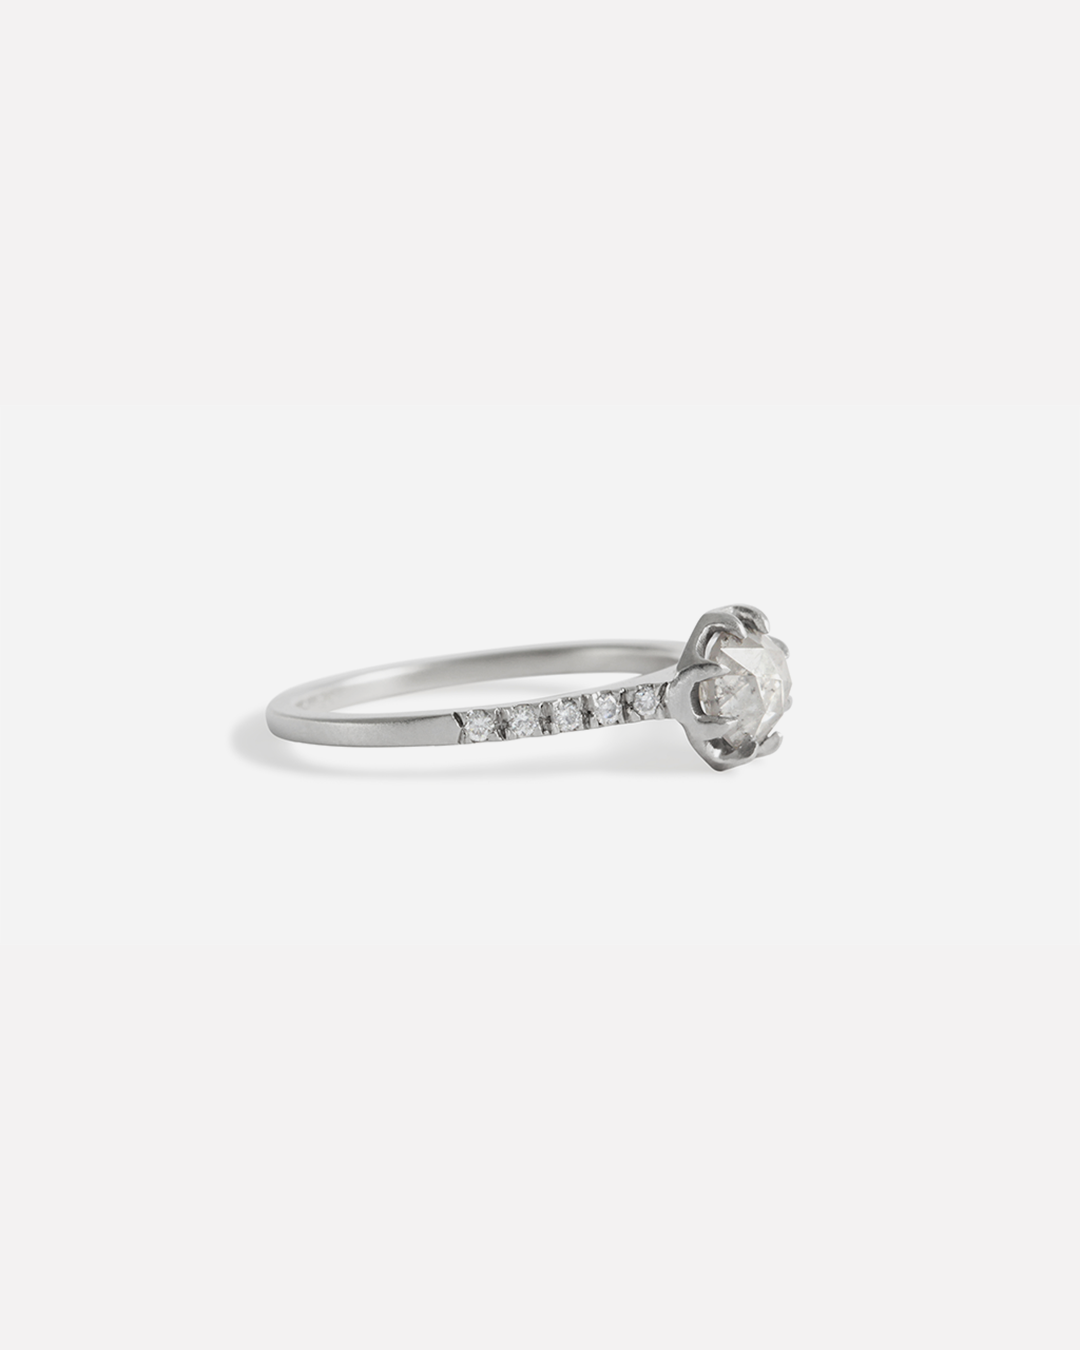 Pave 8 Octagon / Salt + Pepper Diamond + Platinum